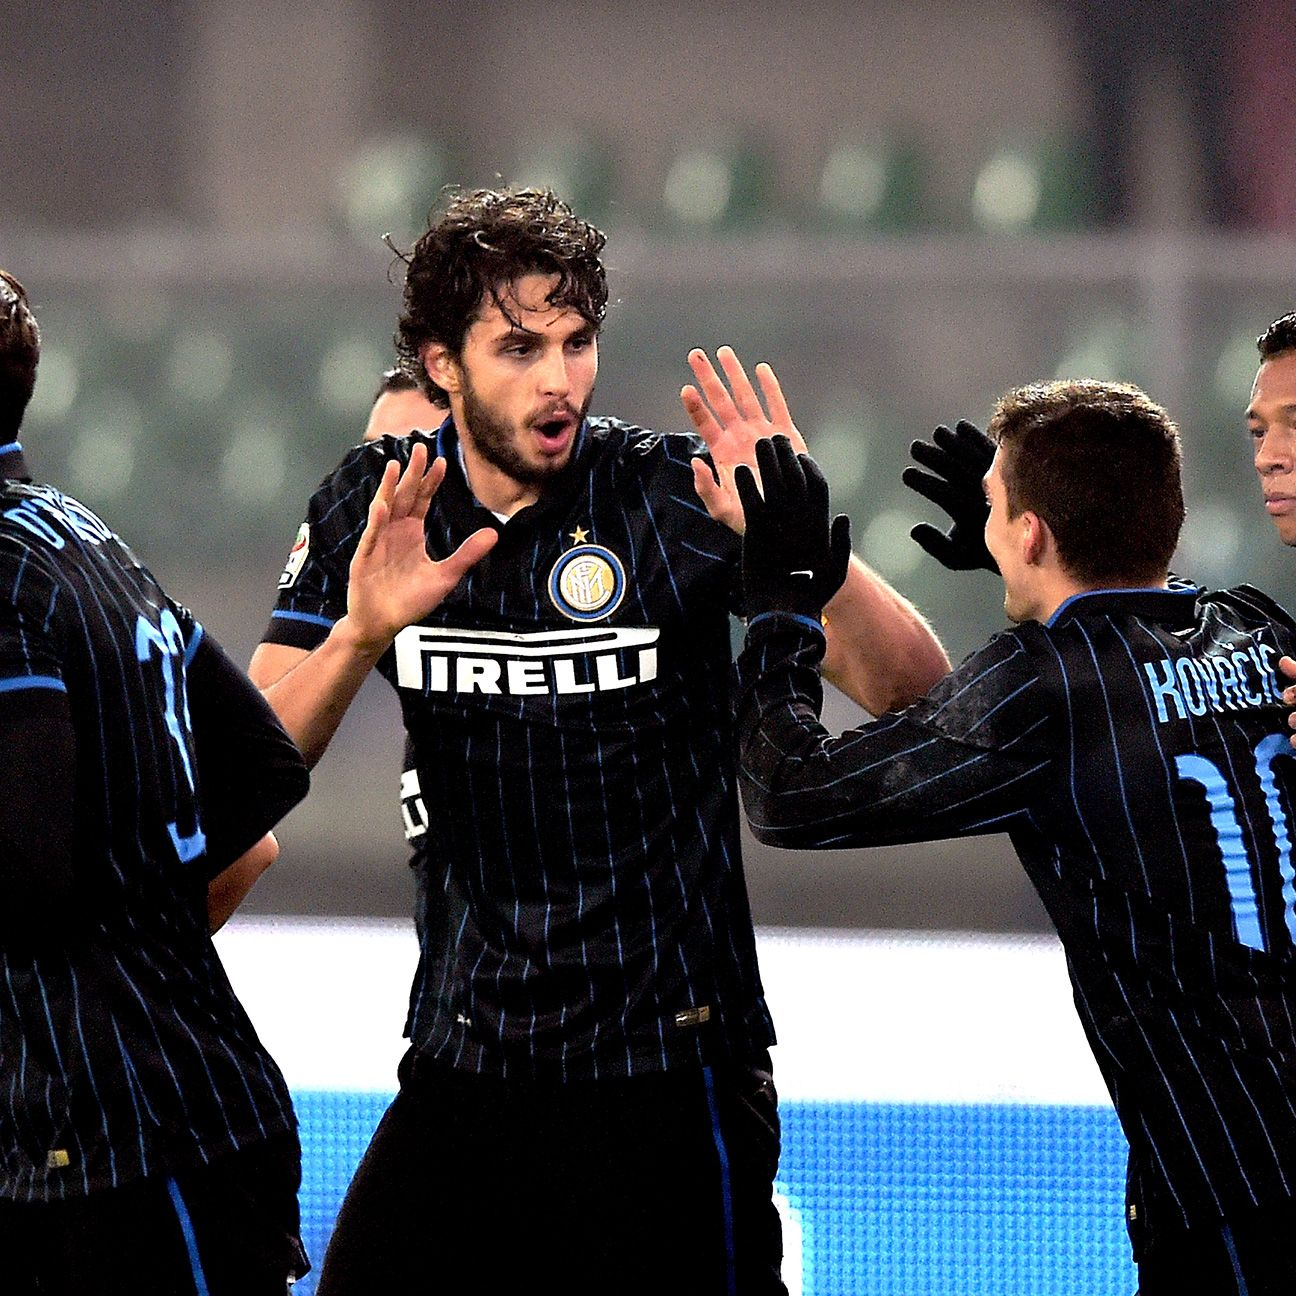 Inter Milan put together their best performance under new manager Roberto Mancini in Monday's 2-0 win at Chievo.